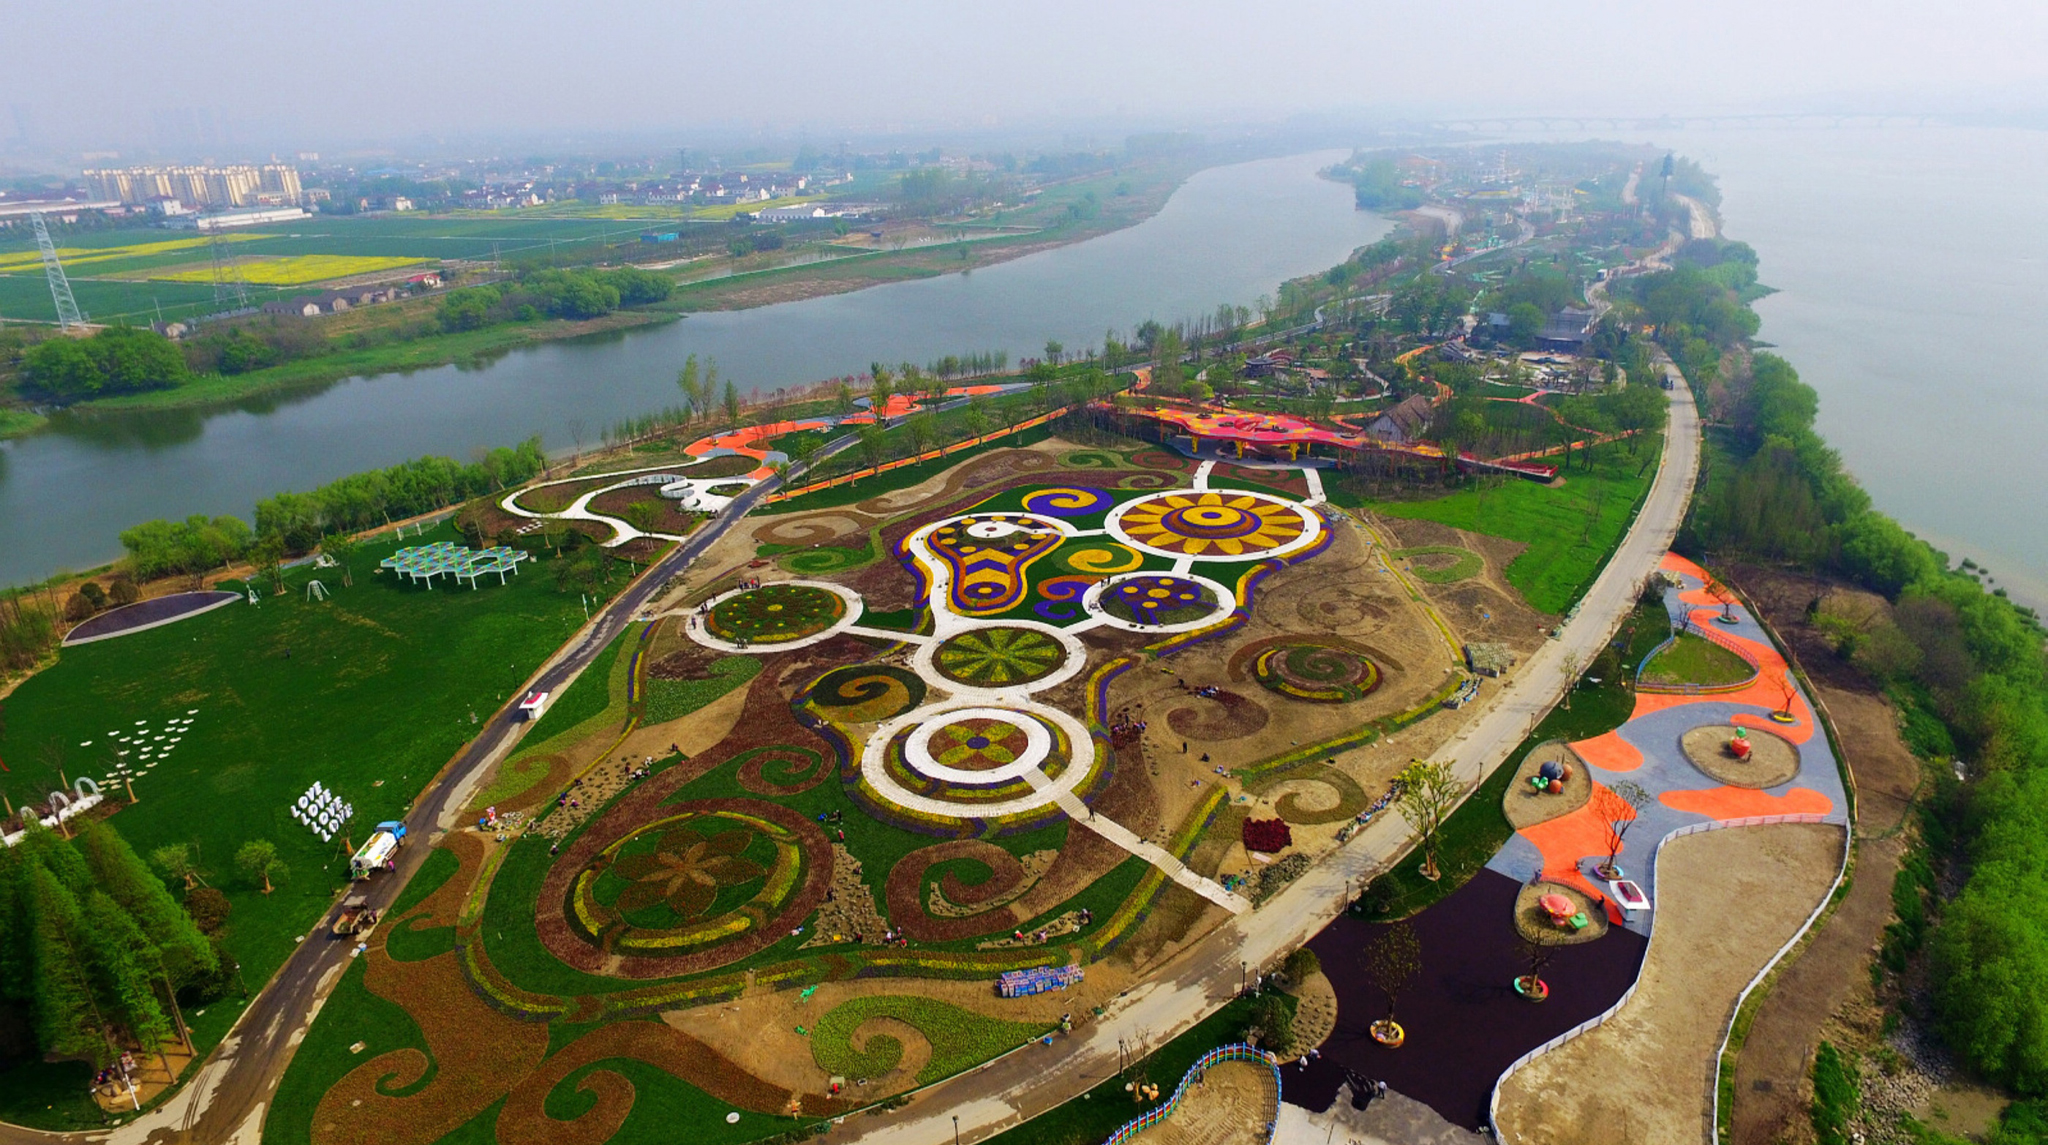 Marco Polo Flower World In Yangzhou...YANGZHOU, CHINA - APRIL 10:  (CHINA OUT) Aerial view of the flower fields in Marco Polo Flower World on April 10, 2016 in Yangzhou, Jiangsu Province of China. The Marco Polo Flower World included seven themed sessions with various kinds of flowers.  (Photo by VCG/VCG via Getty Images)